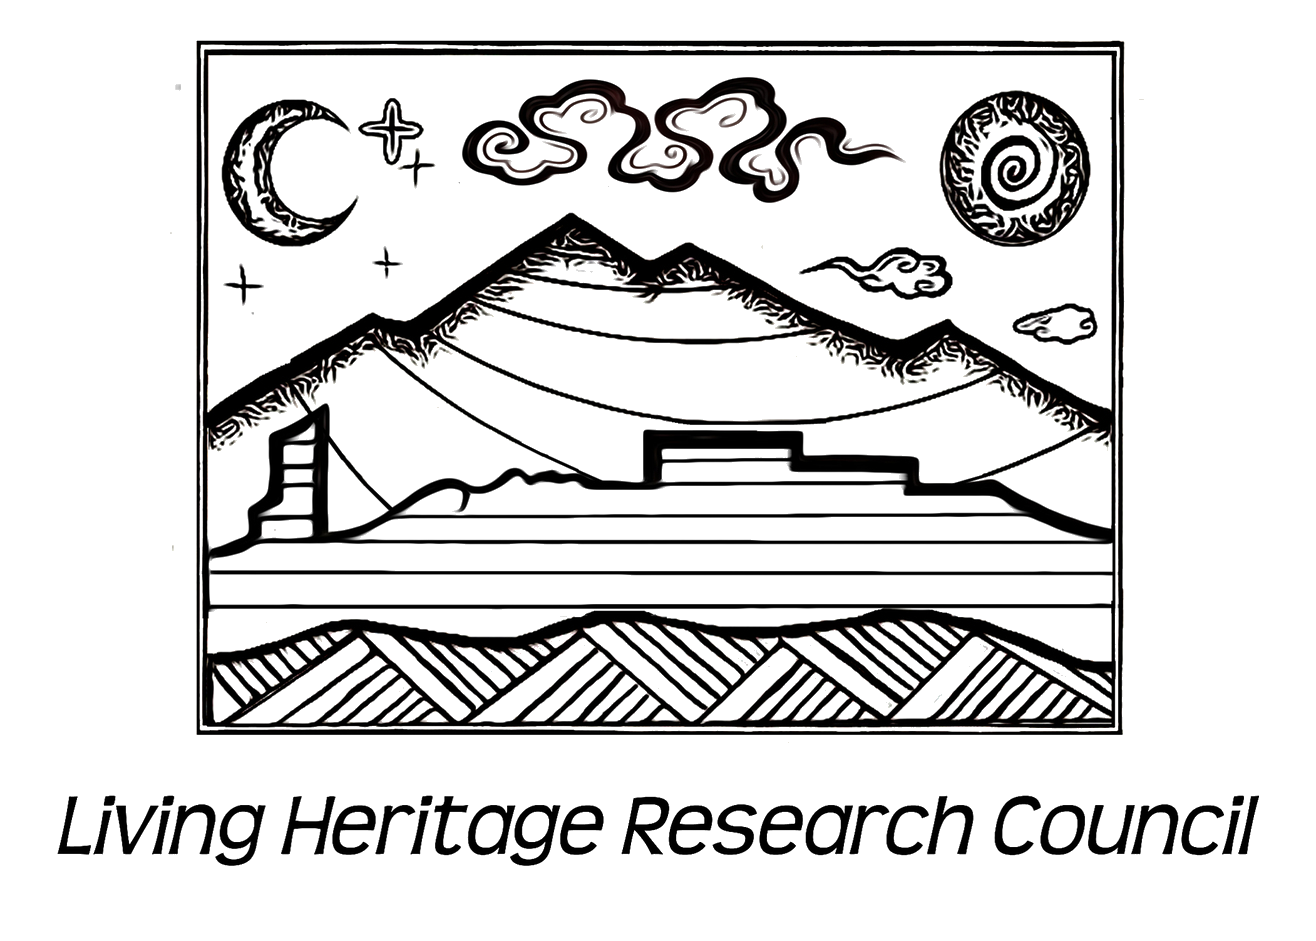 Living Heritage Research Council